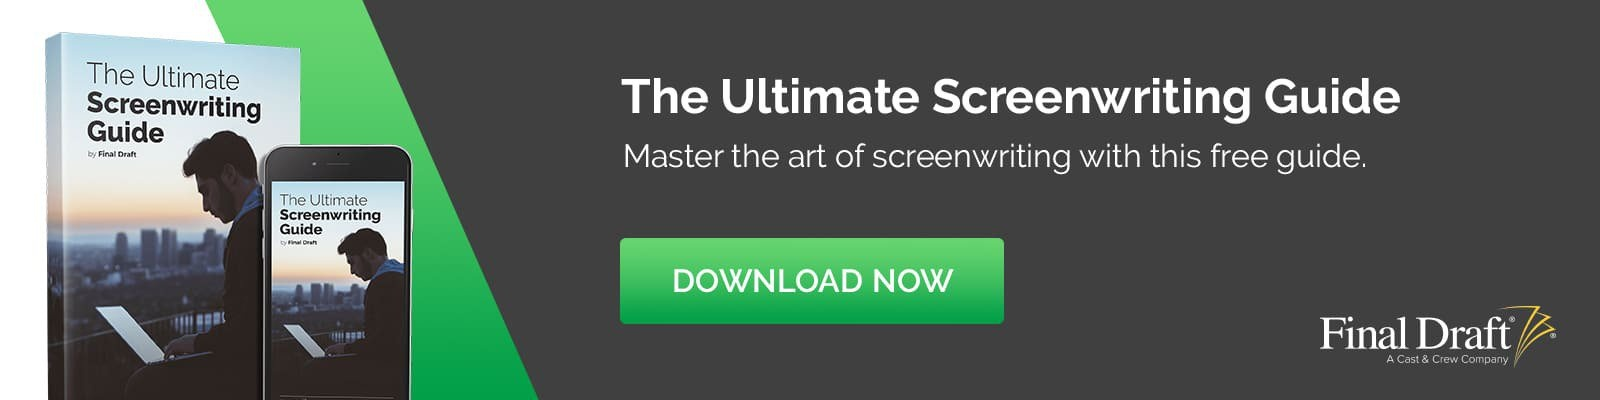 ultimate screenwriting guide